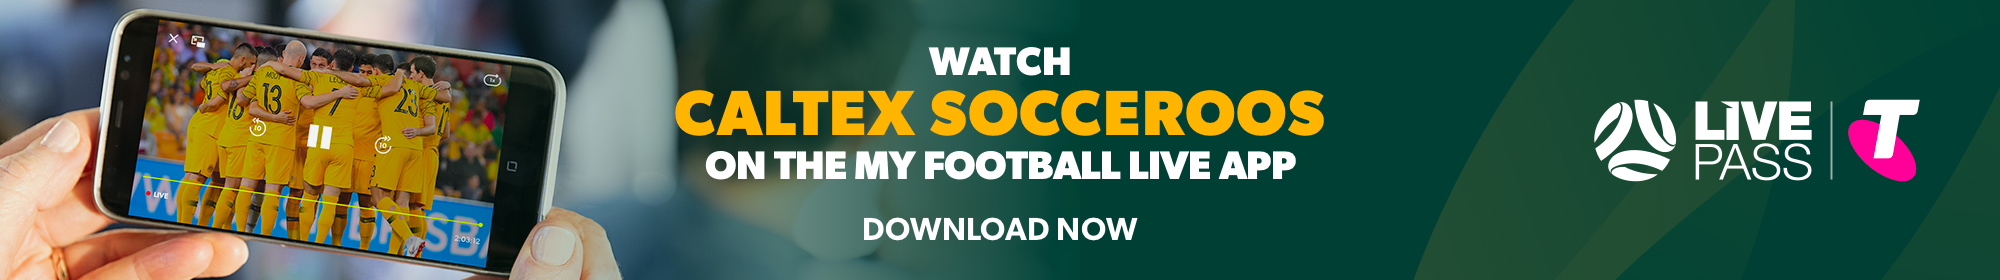 Socceroos Telstra Live Pass